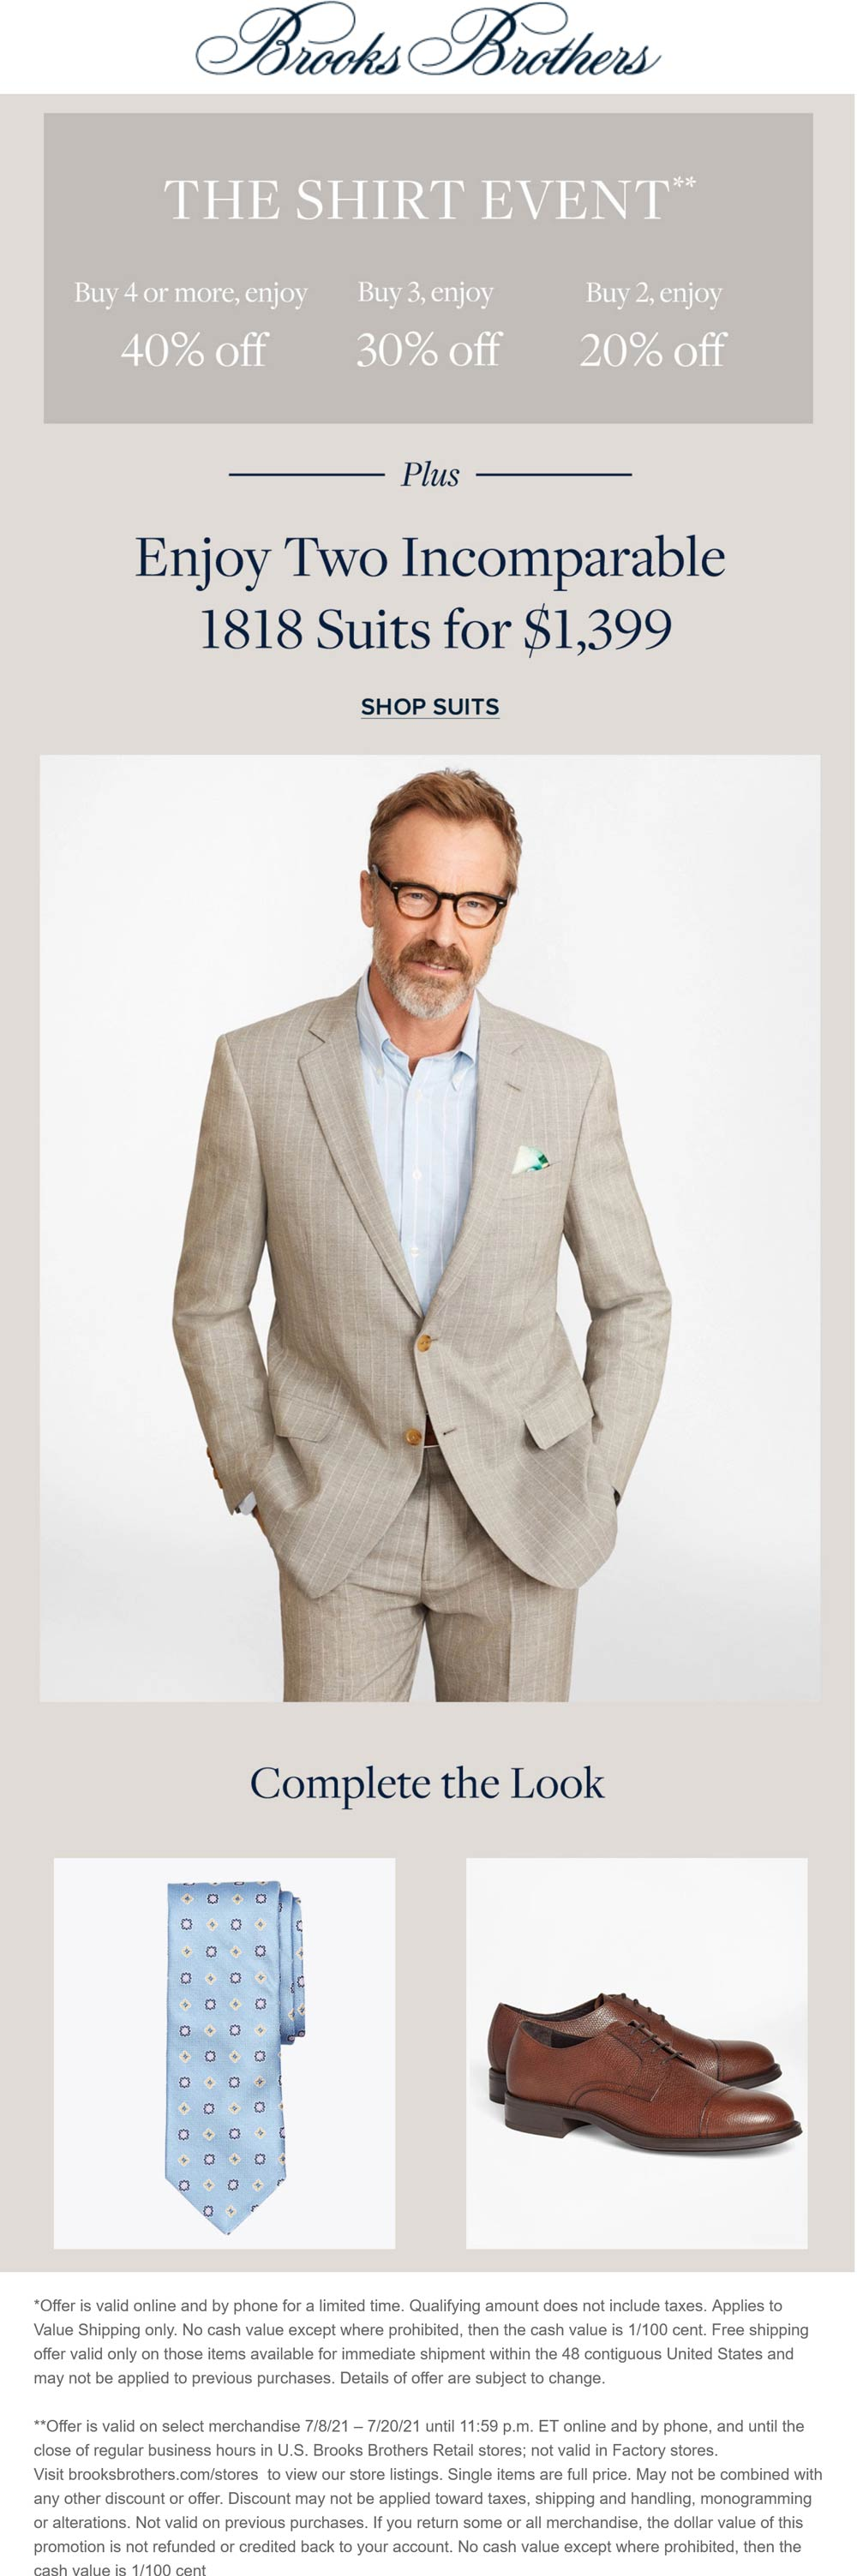 Brooks Brothers stores Coupon  20-40% off 2+ shirts at Brooks Brothers, ditto online #brooksbrothers